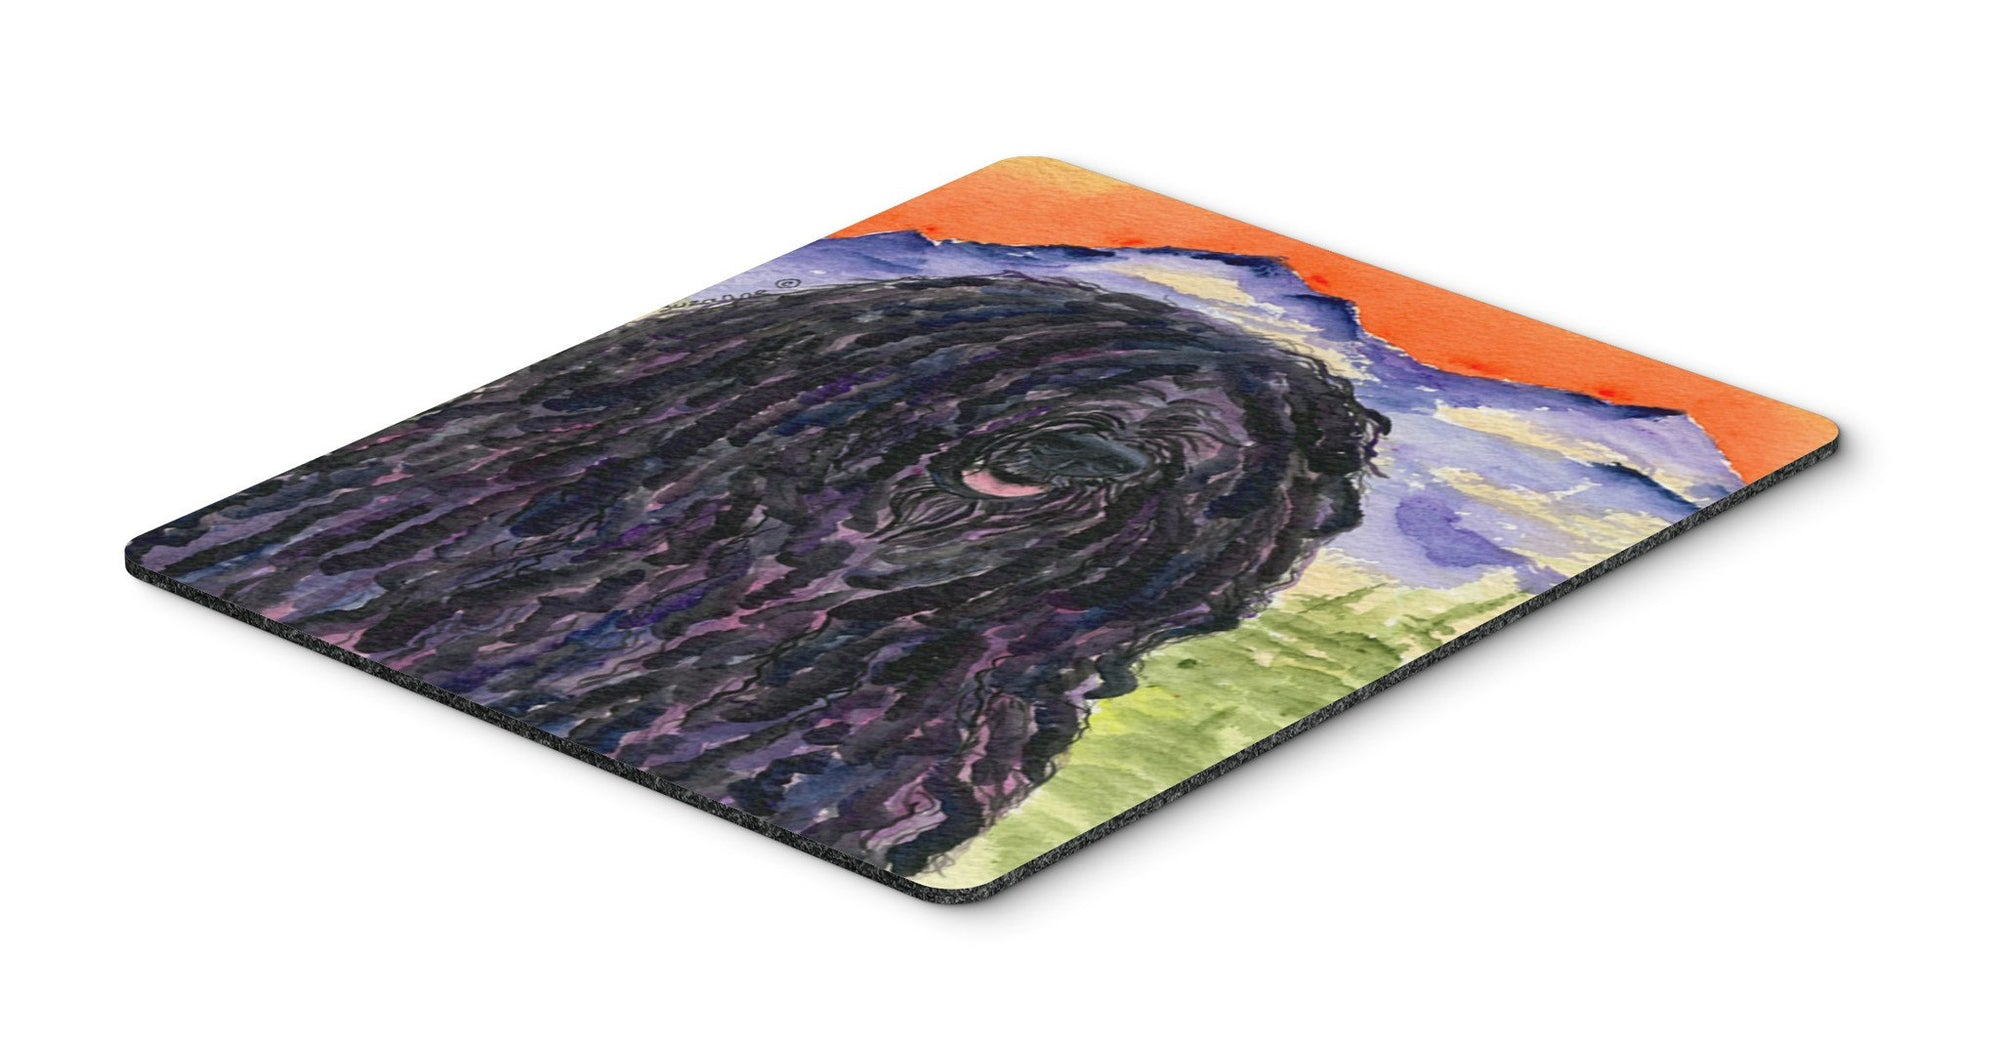 Buy this Puli Mouse Pad, Hot Pad or Trivet